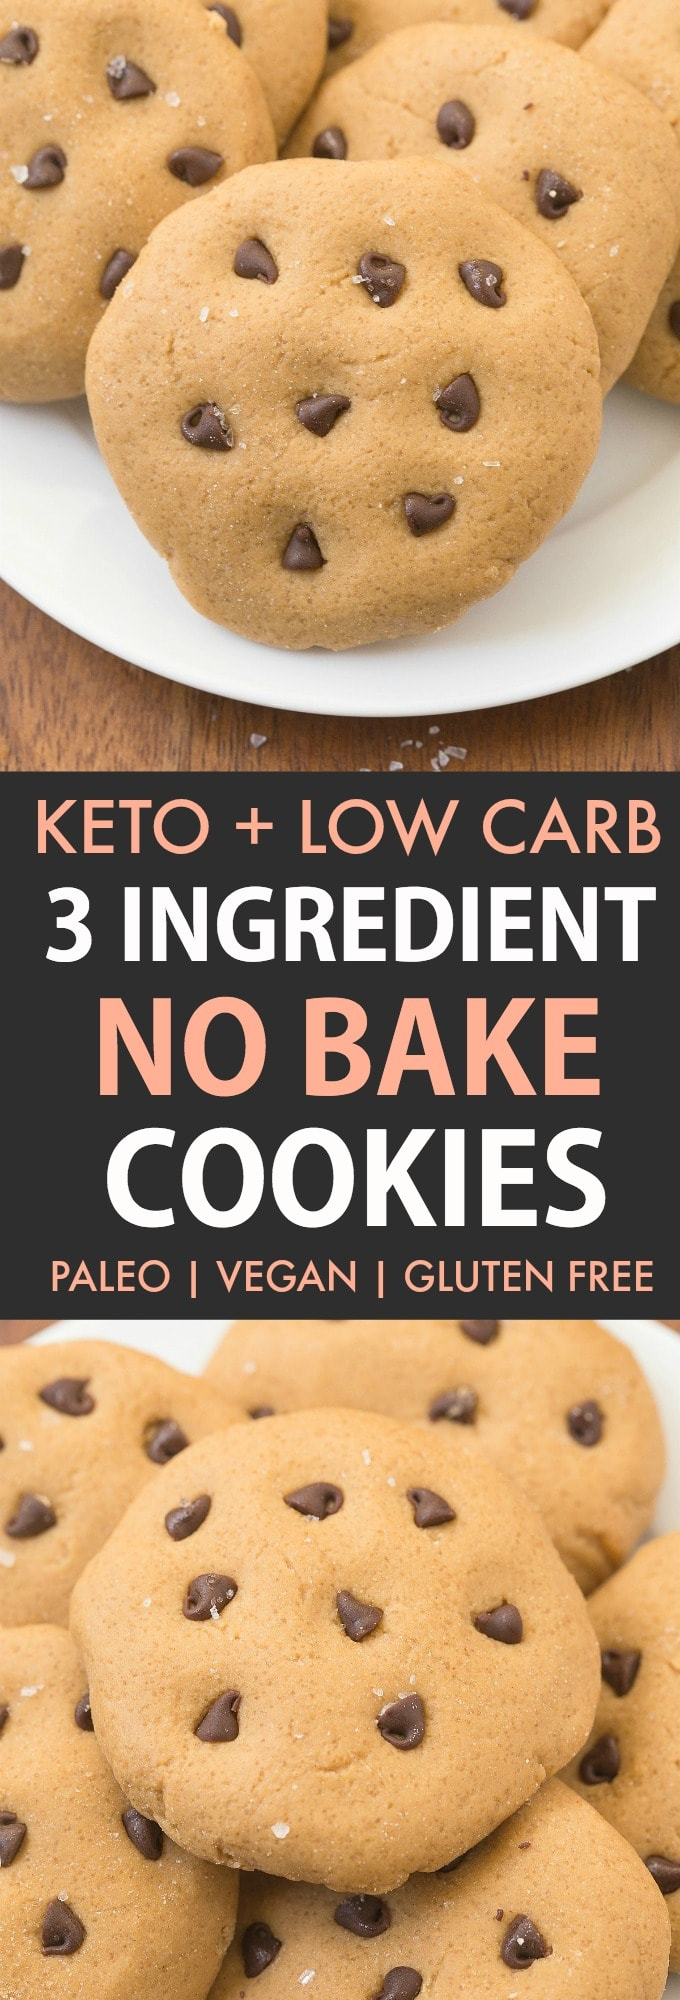 Keto No Bake Cookies with chocolate chips